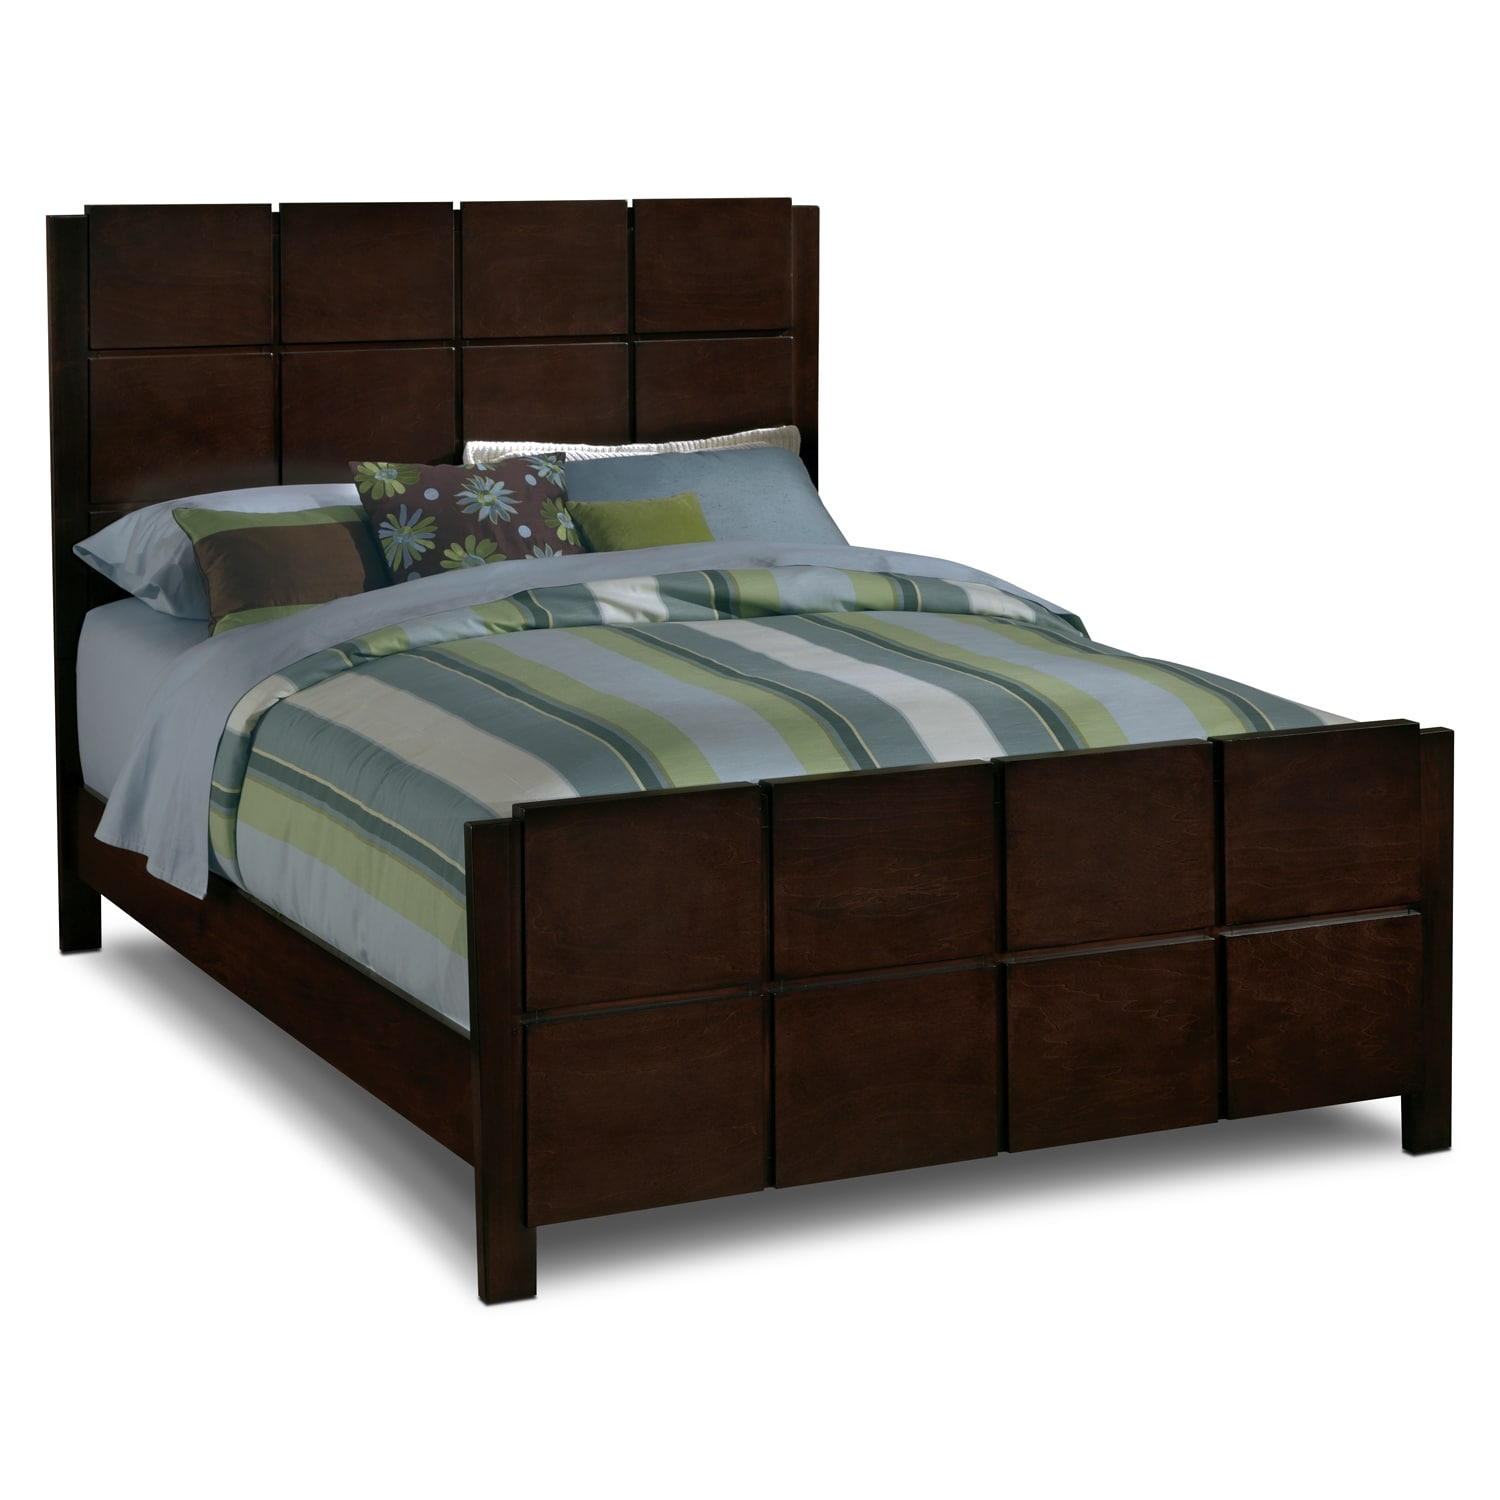 Dining Room Furniture Deals Mosaic Queen Bed Dark Brown Value City Furniture